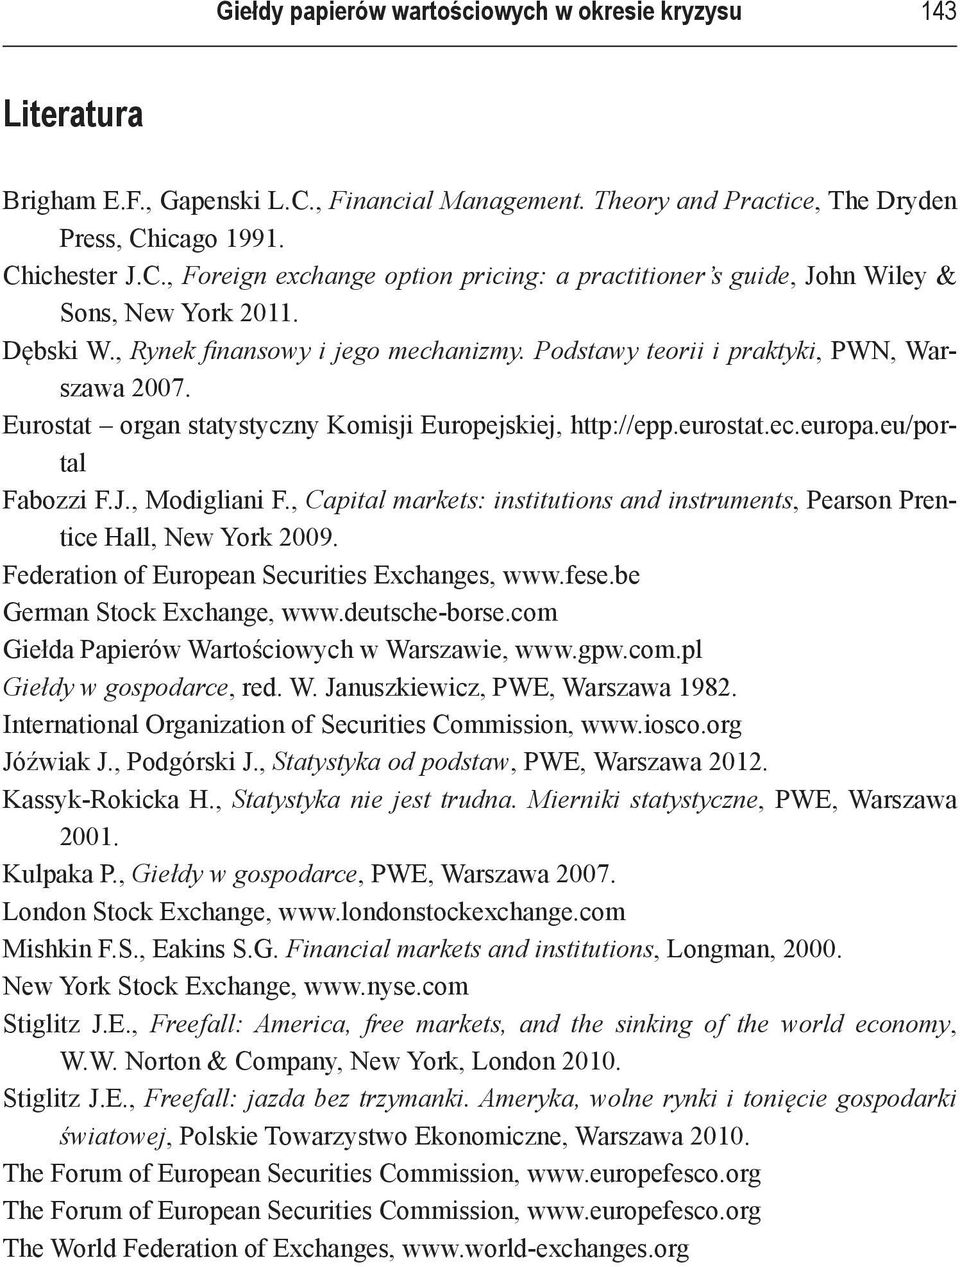 , Modigliani F., Capital markets: institutions and instruments, Pearson Prentice Hall, New York 2009. Federation of European Securities Exchanges, www.fese.be German Stock Exchange, www.